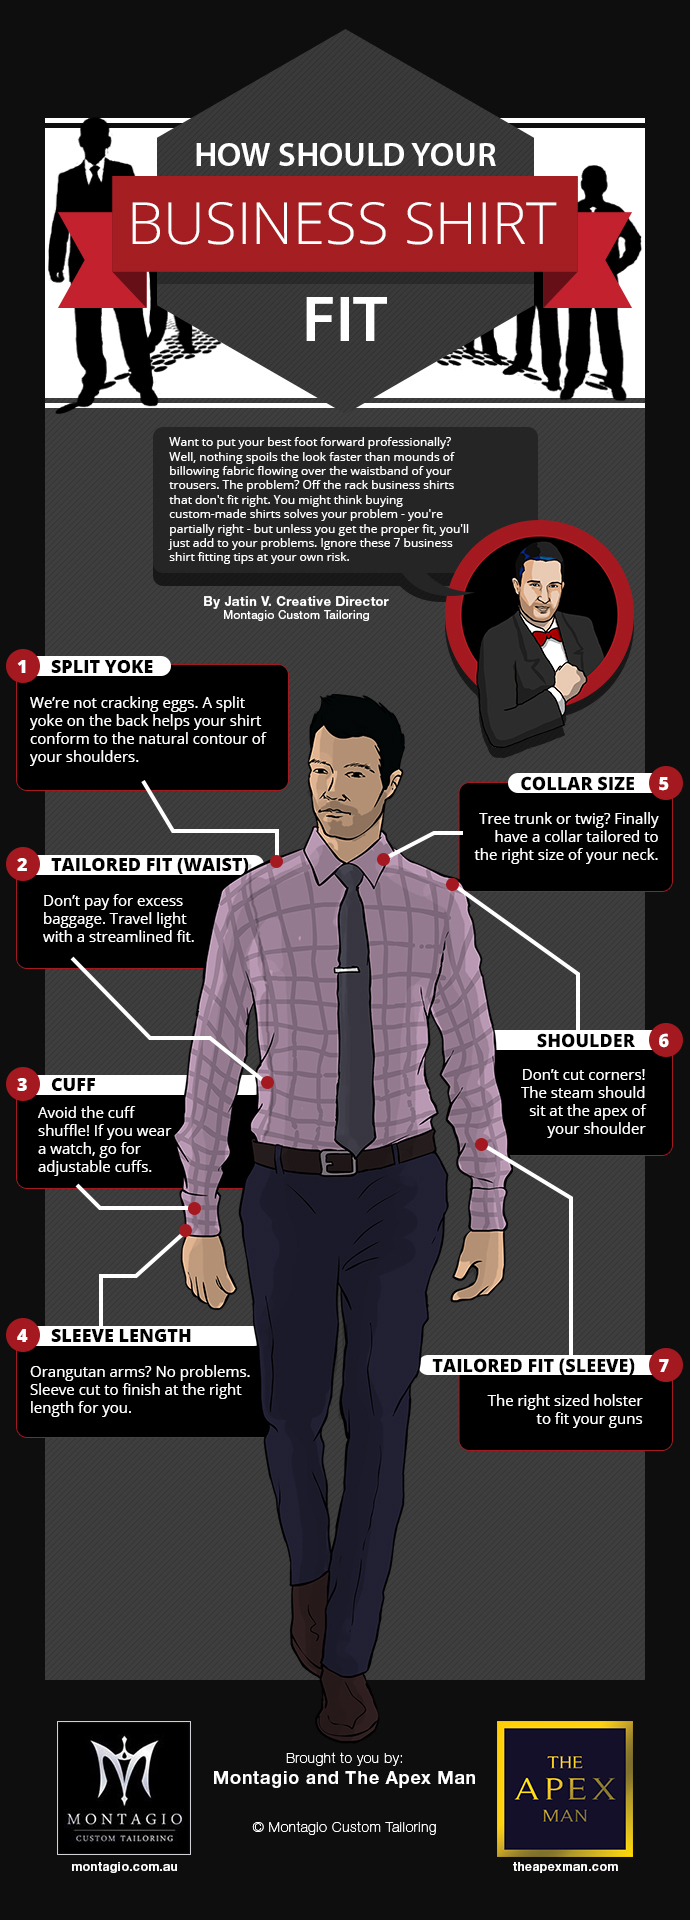 how-should-your-business-shirt-fit-infographic